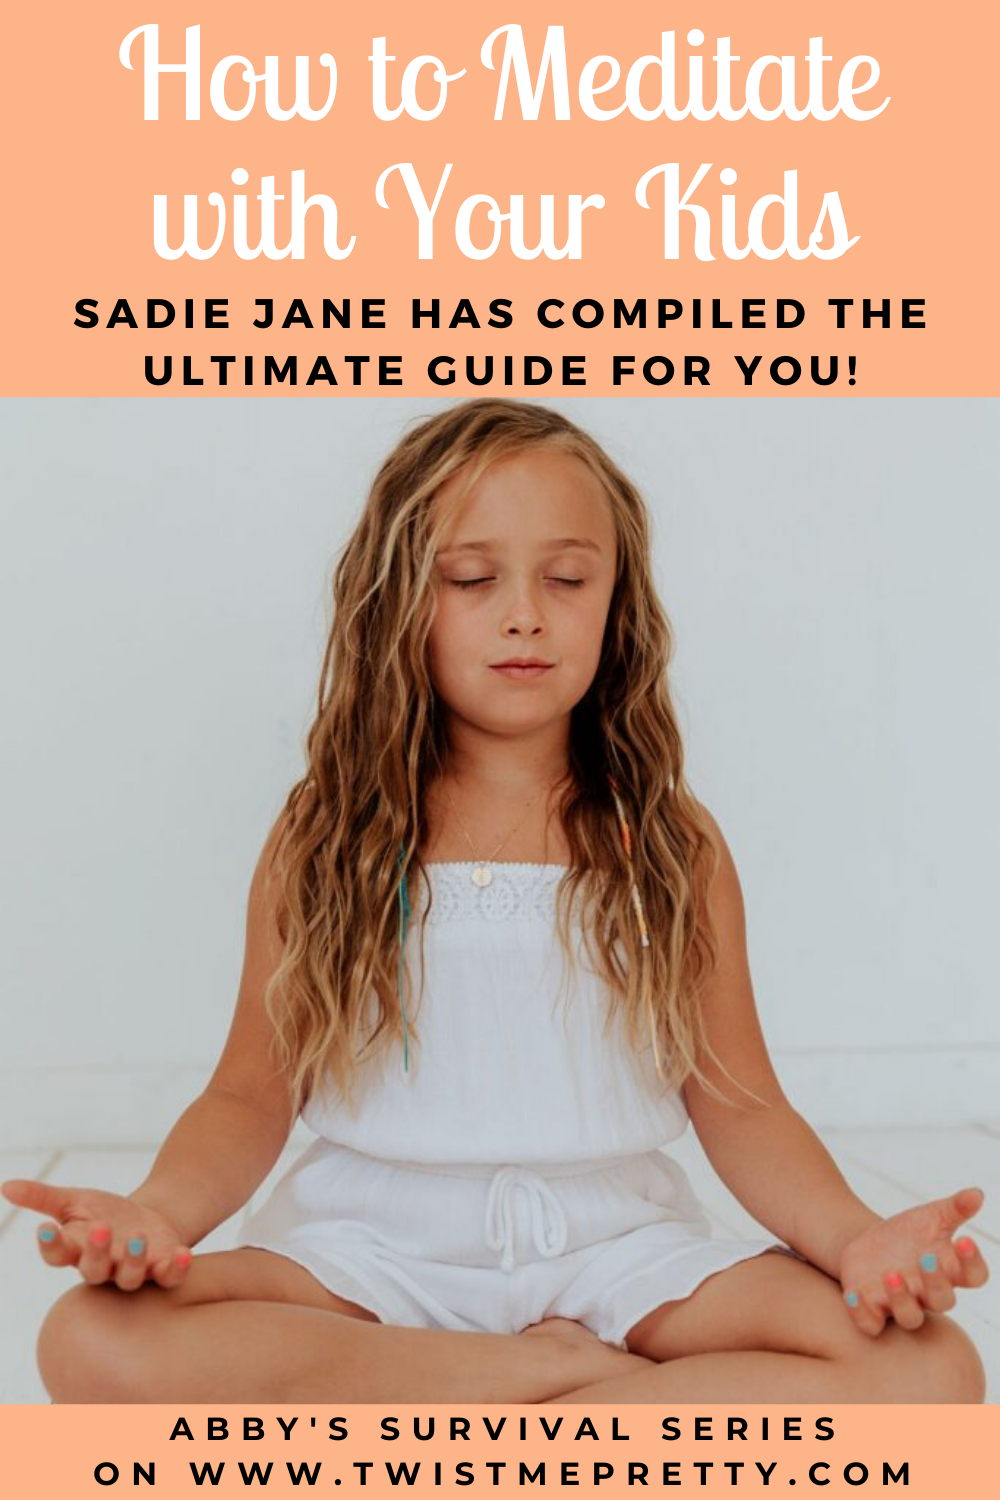 How to Meditate with Your Kids- A Guide by Sadie Jane for Abby's Survival Series www.TwistMePretty.com